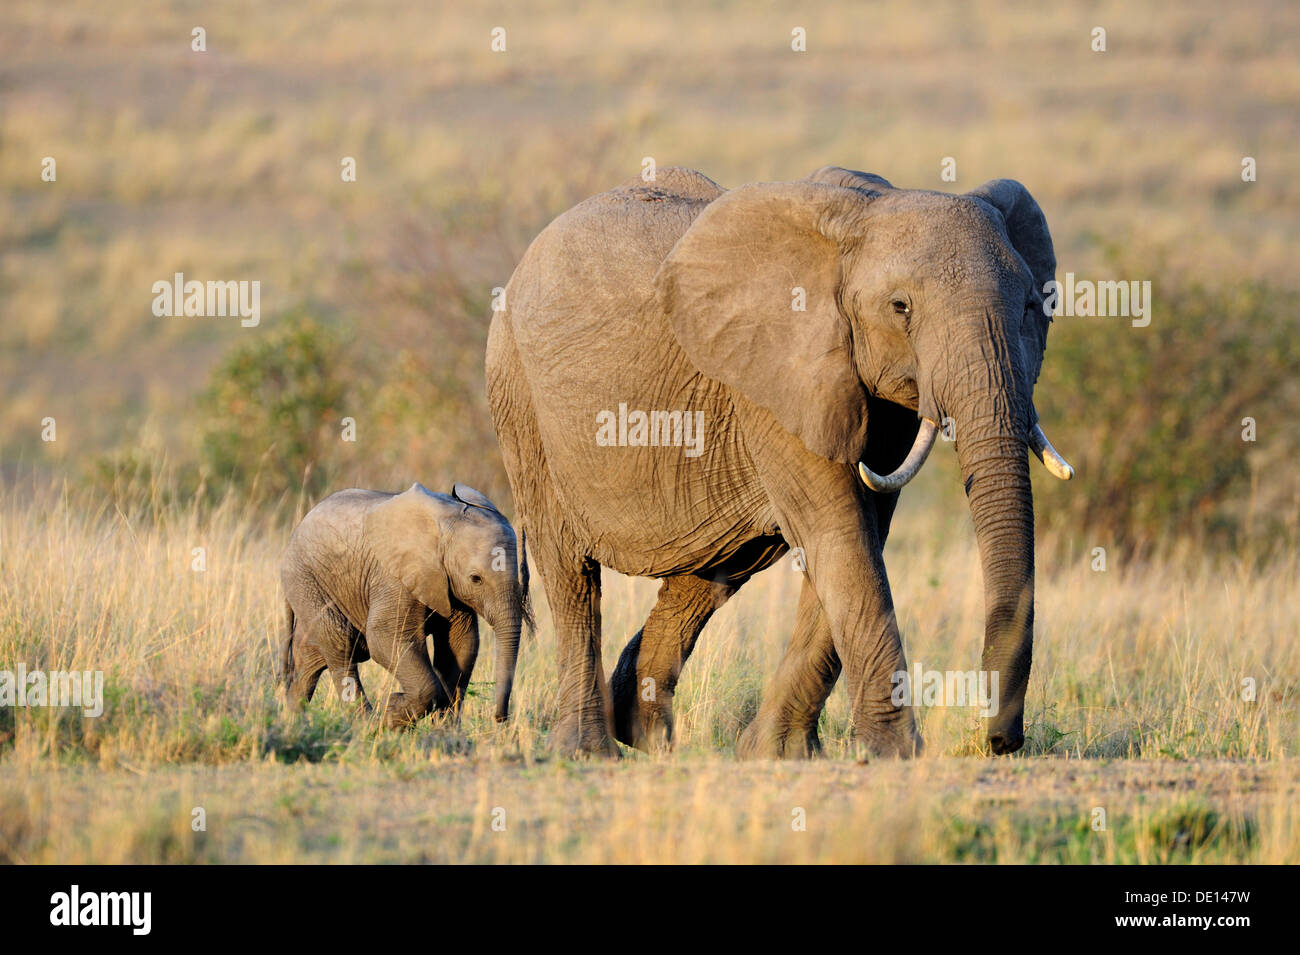 African elephant (Loxodonta africana), cow and calf at the first light of dawn, Masai Mara National Reserve, Kenya, East Africa - Stock Image